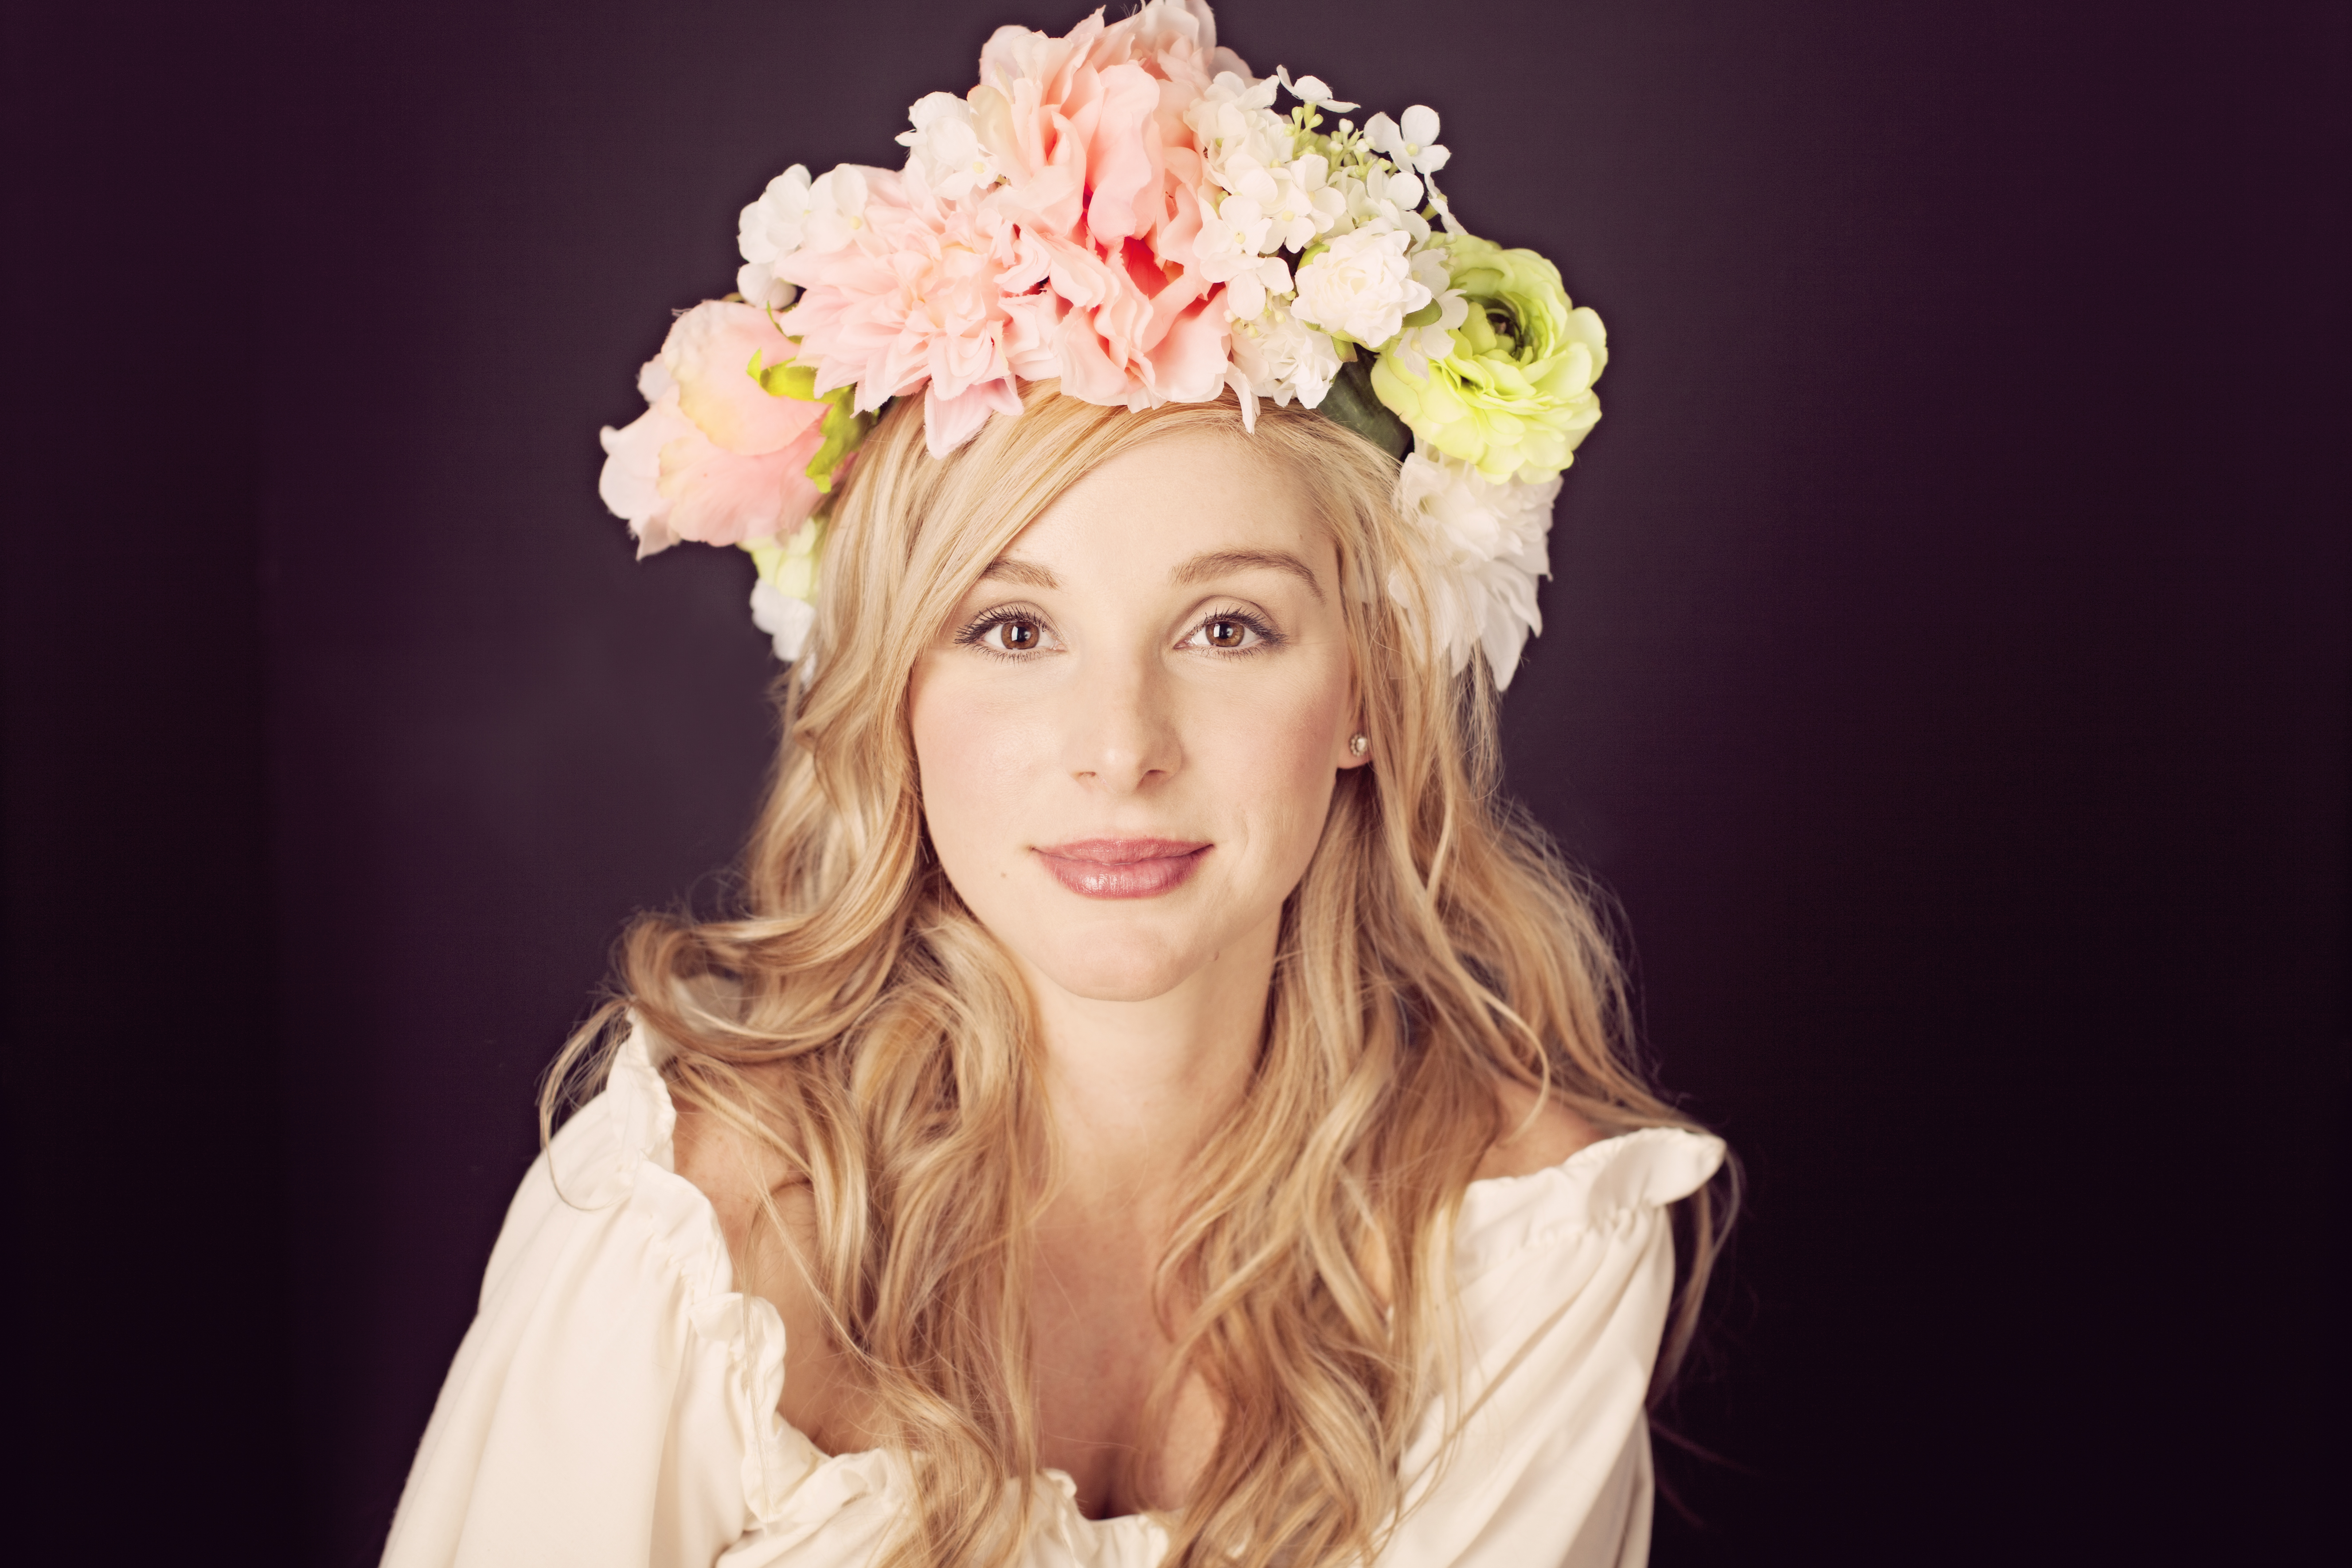 Allie with floral crown